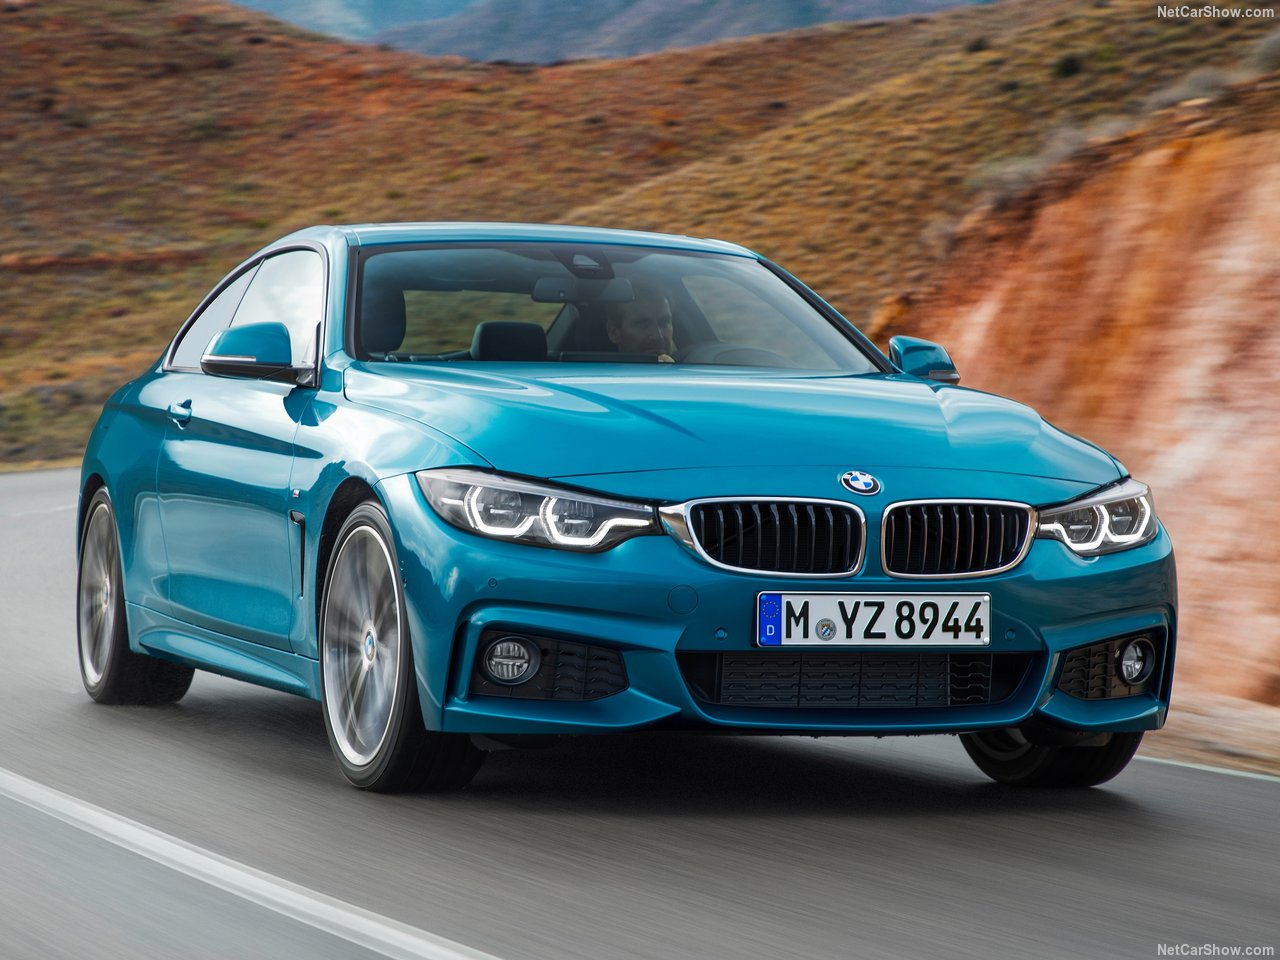 2018 BMW 4-Series Coupe Design, Price, Specs, Engine